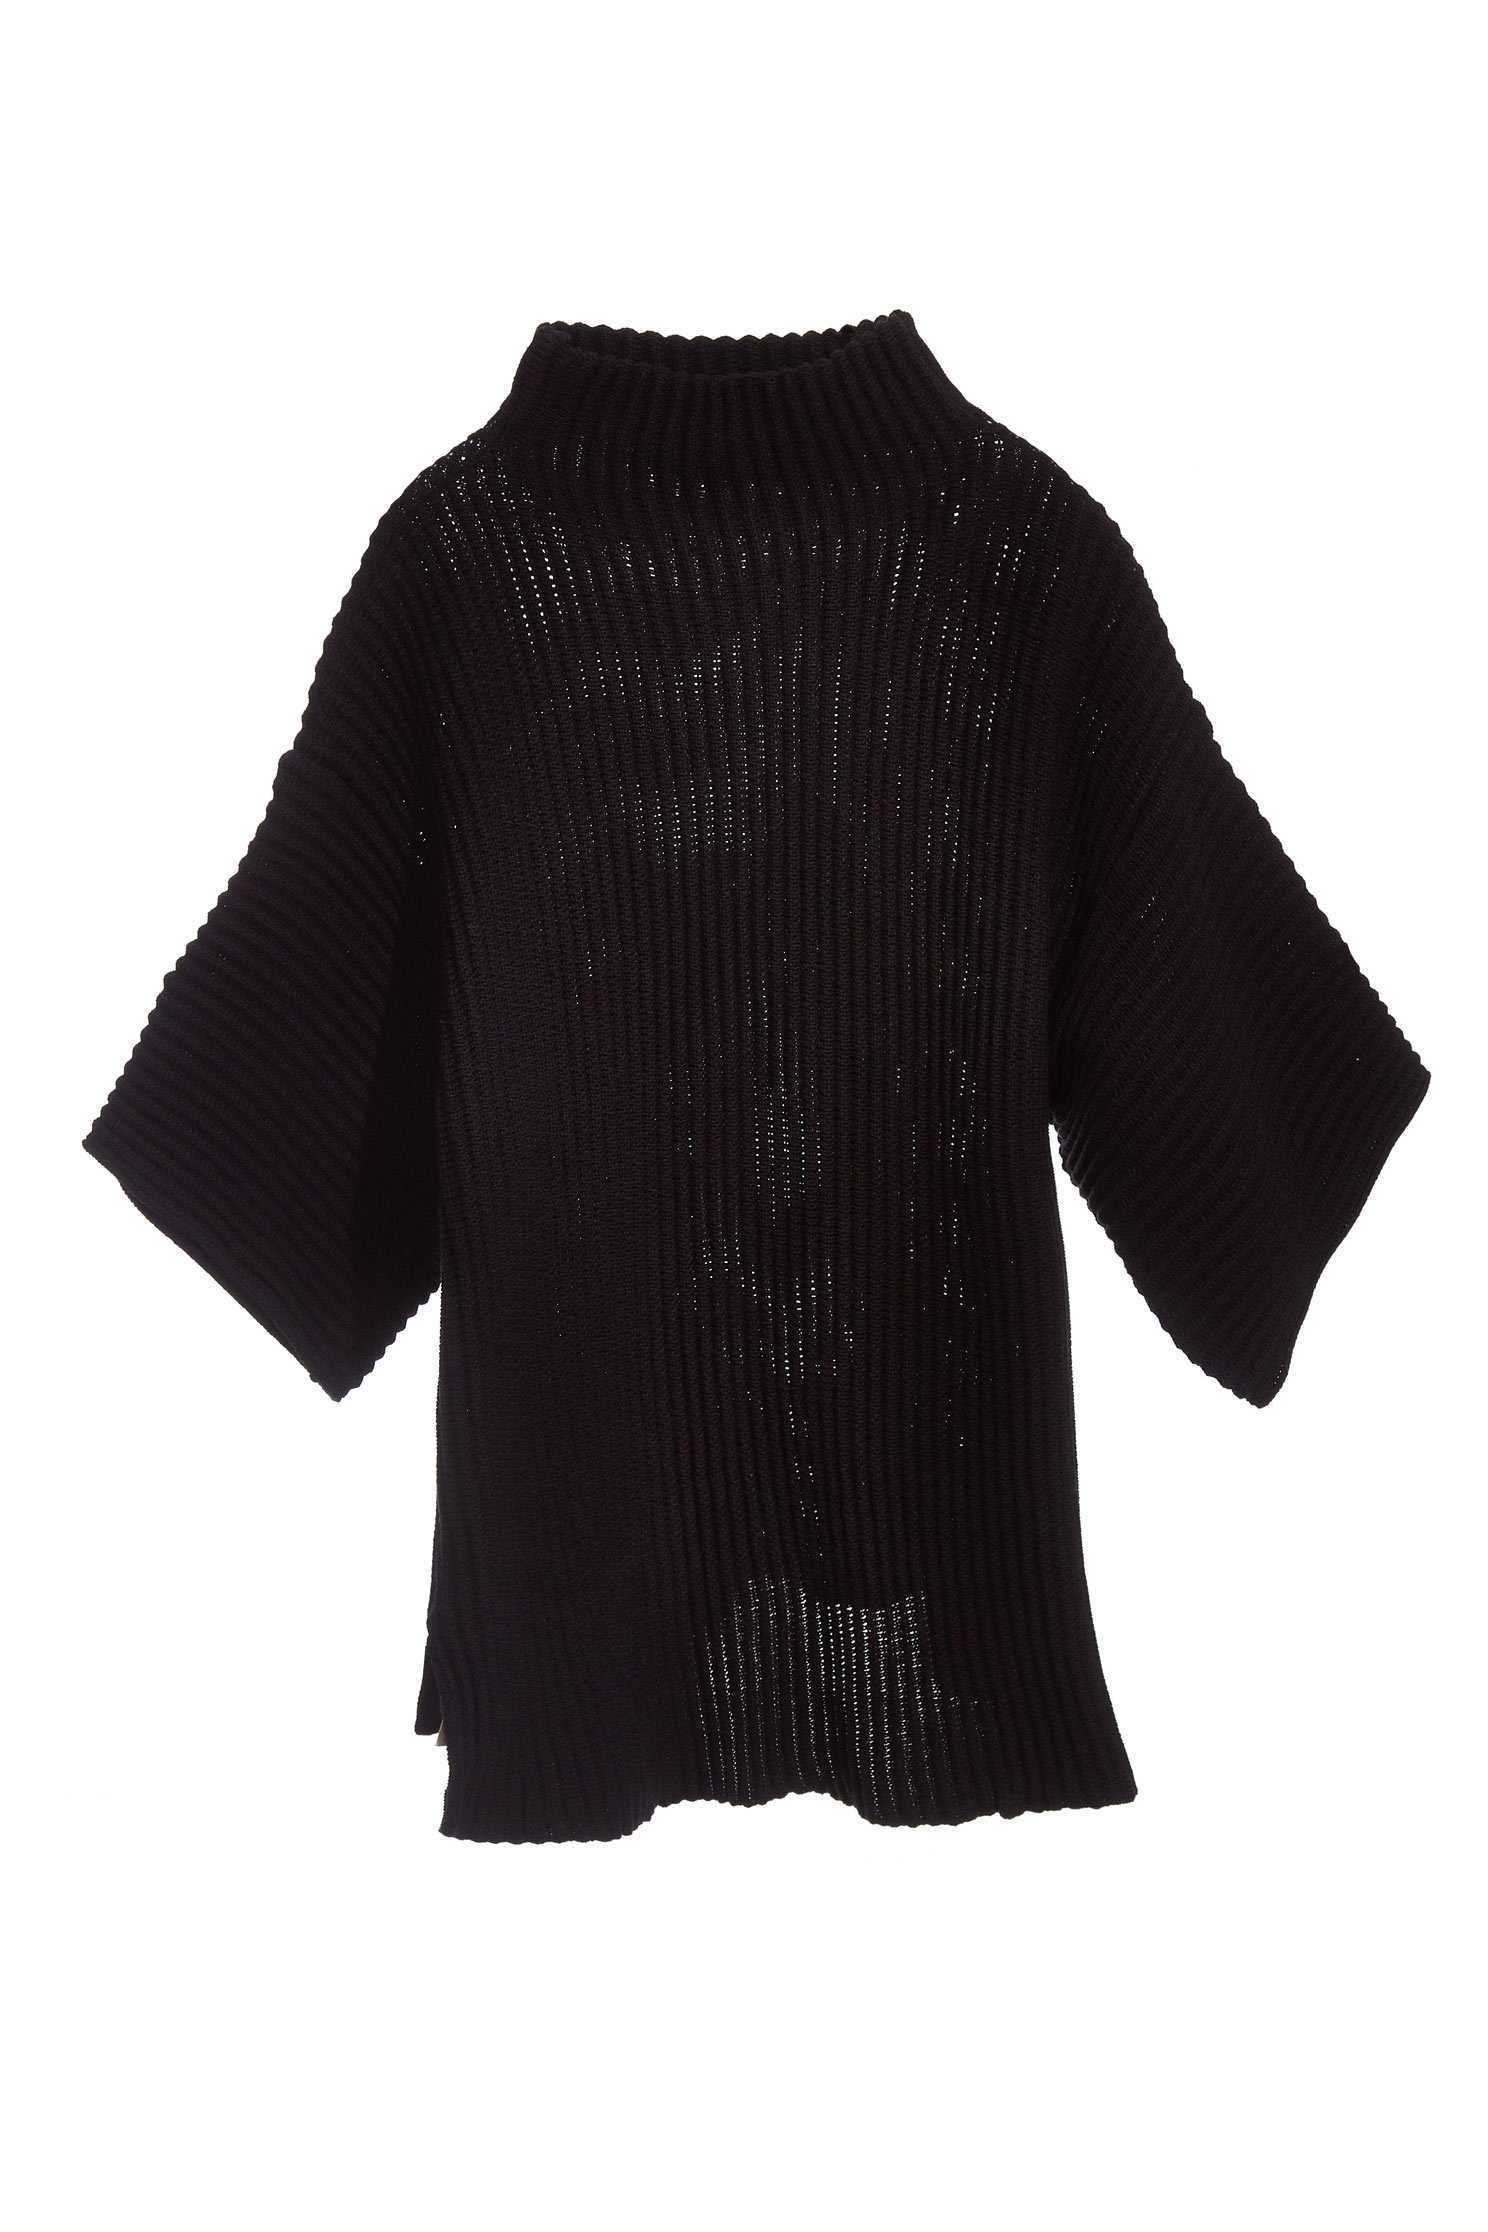 mid-high colla knit long sleeves sweater